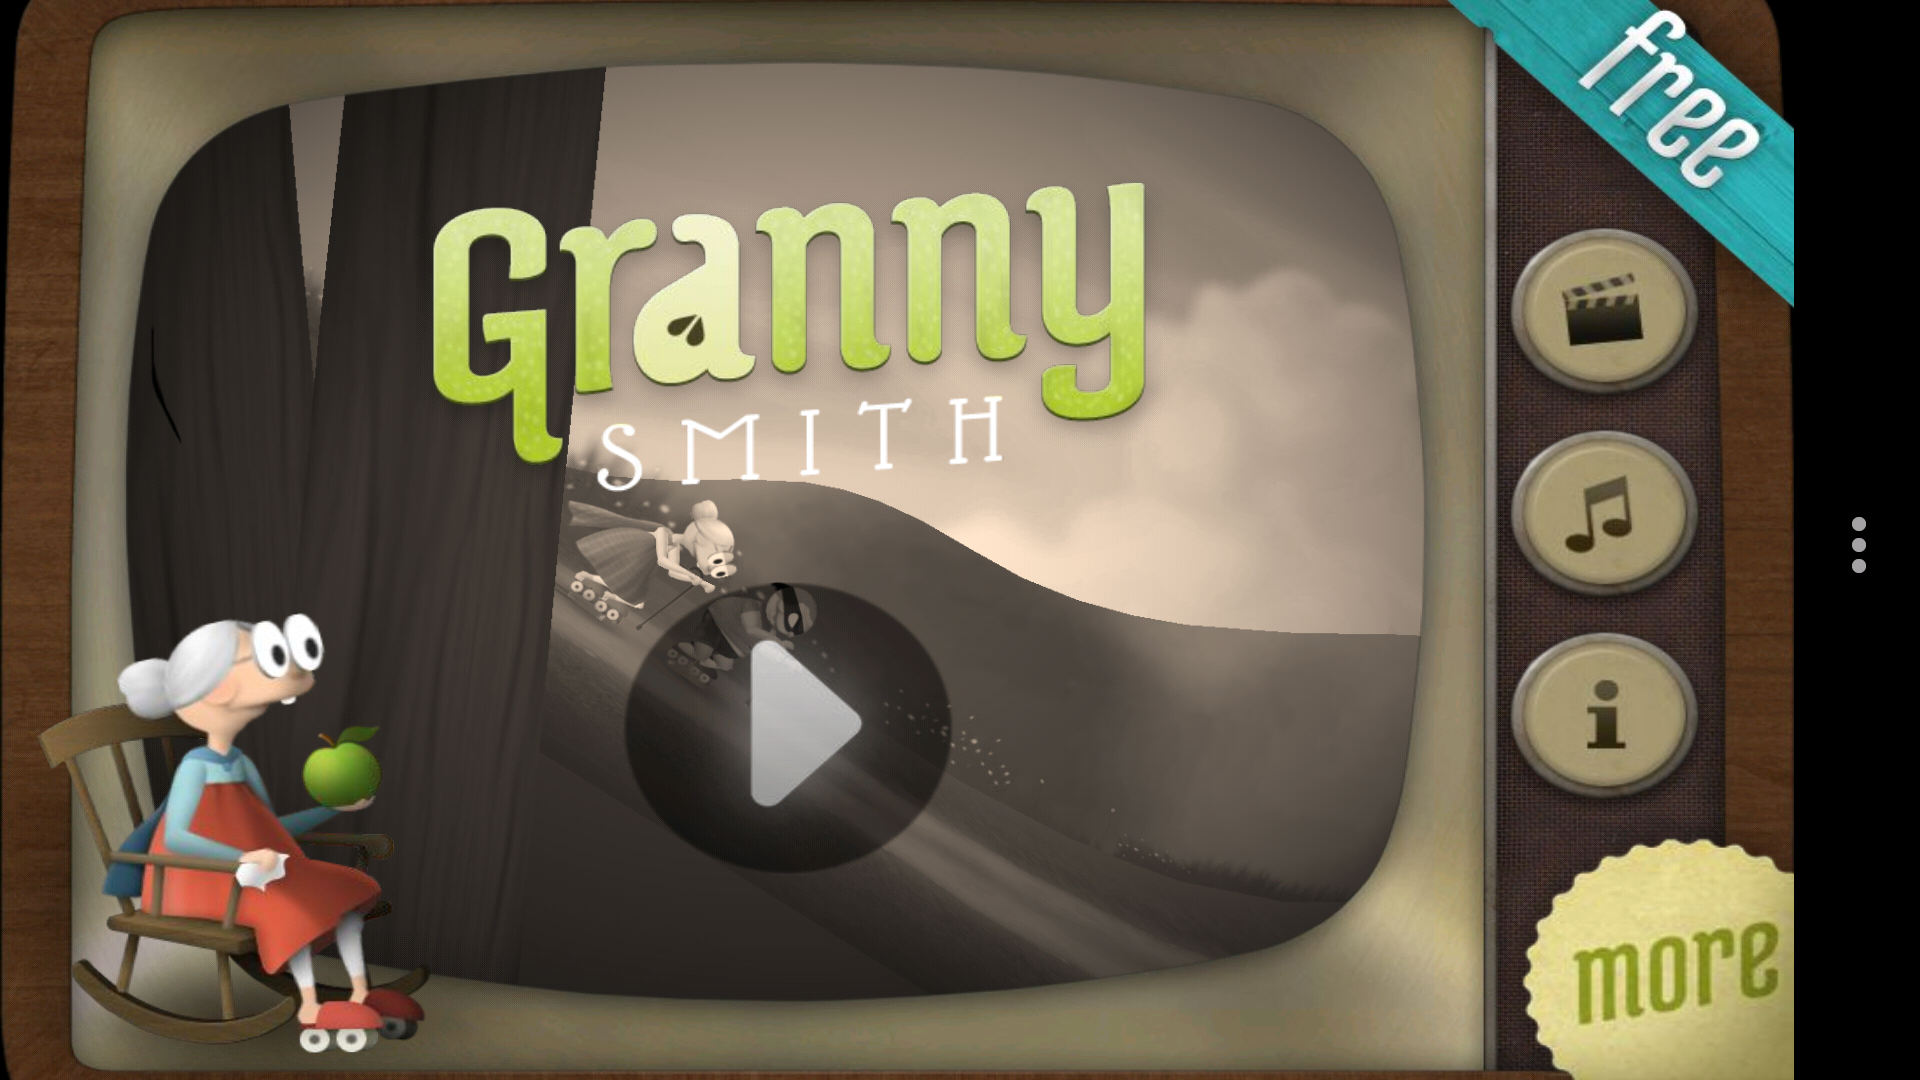 Download Granny latest   Android APK